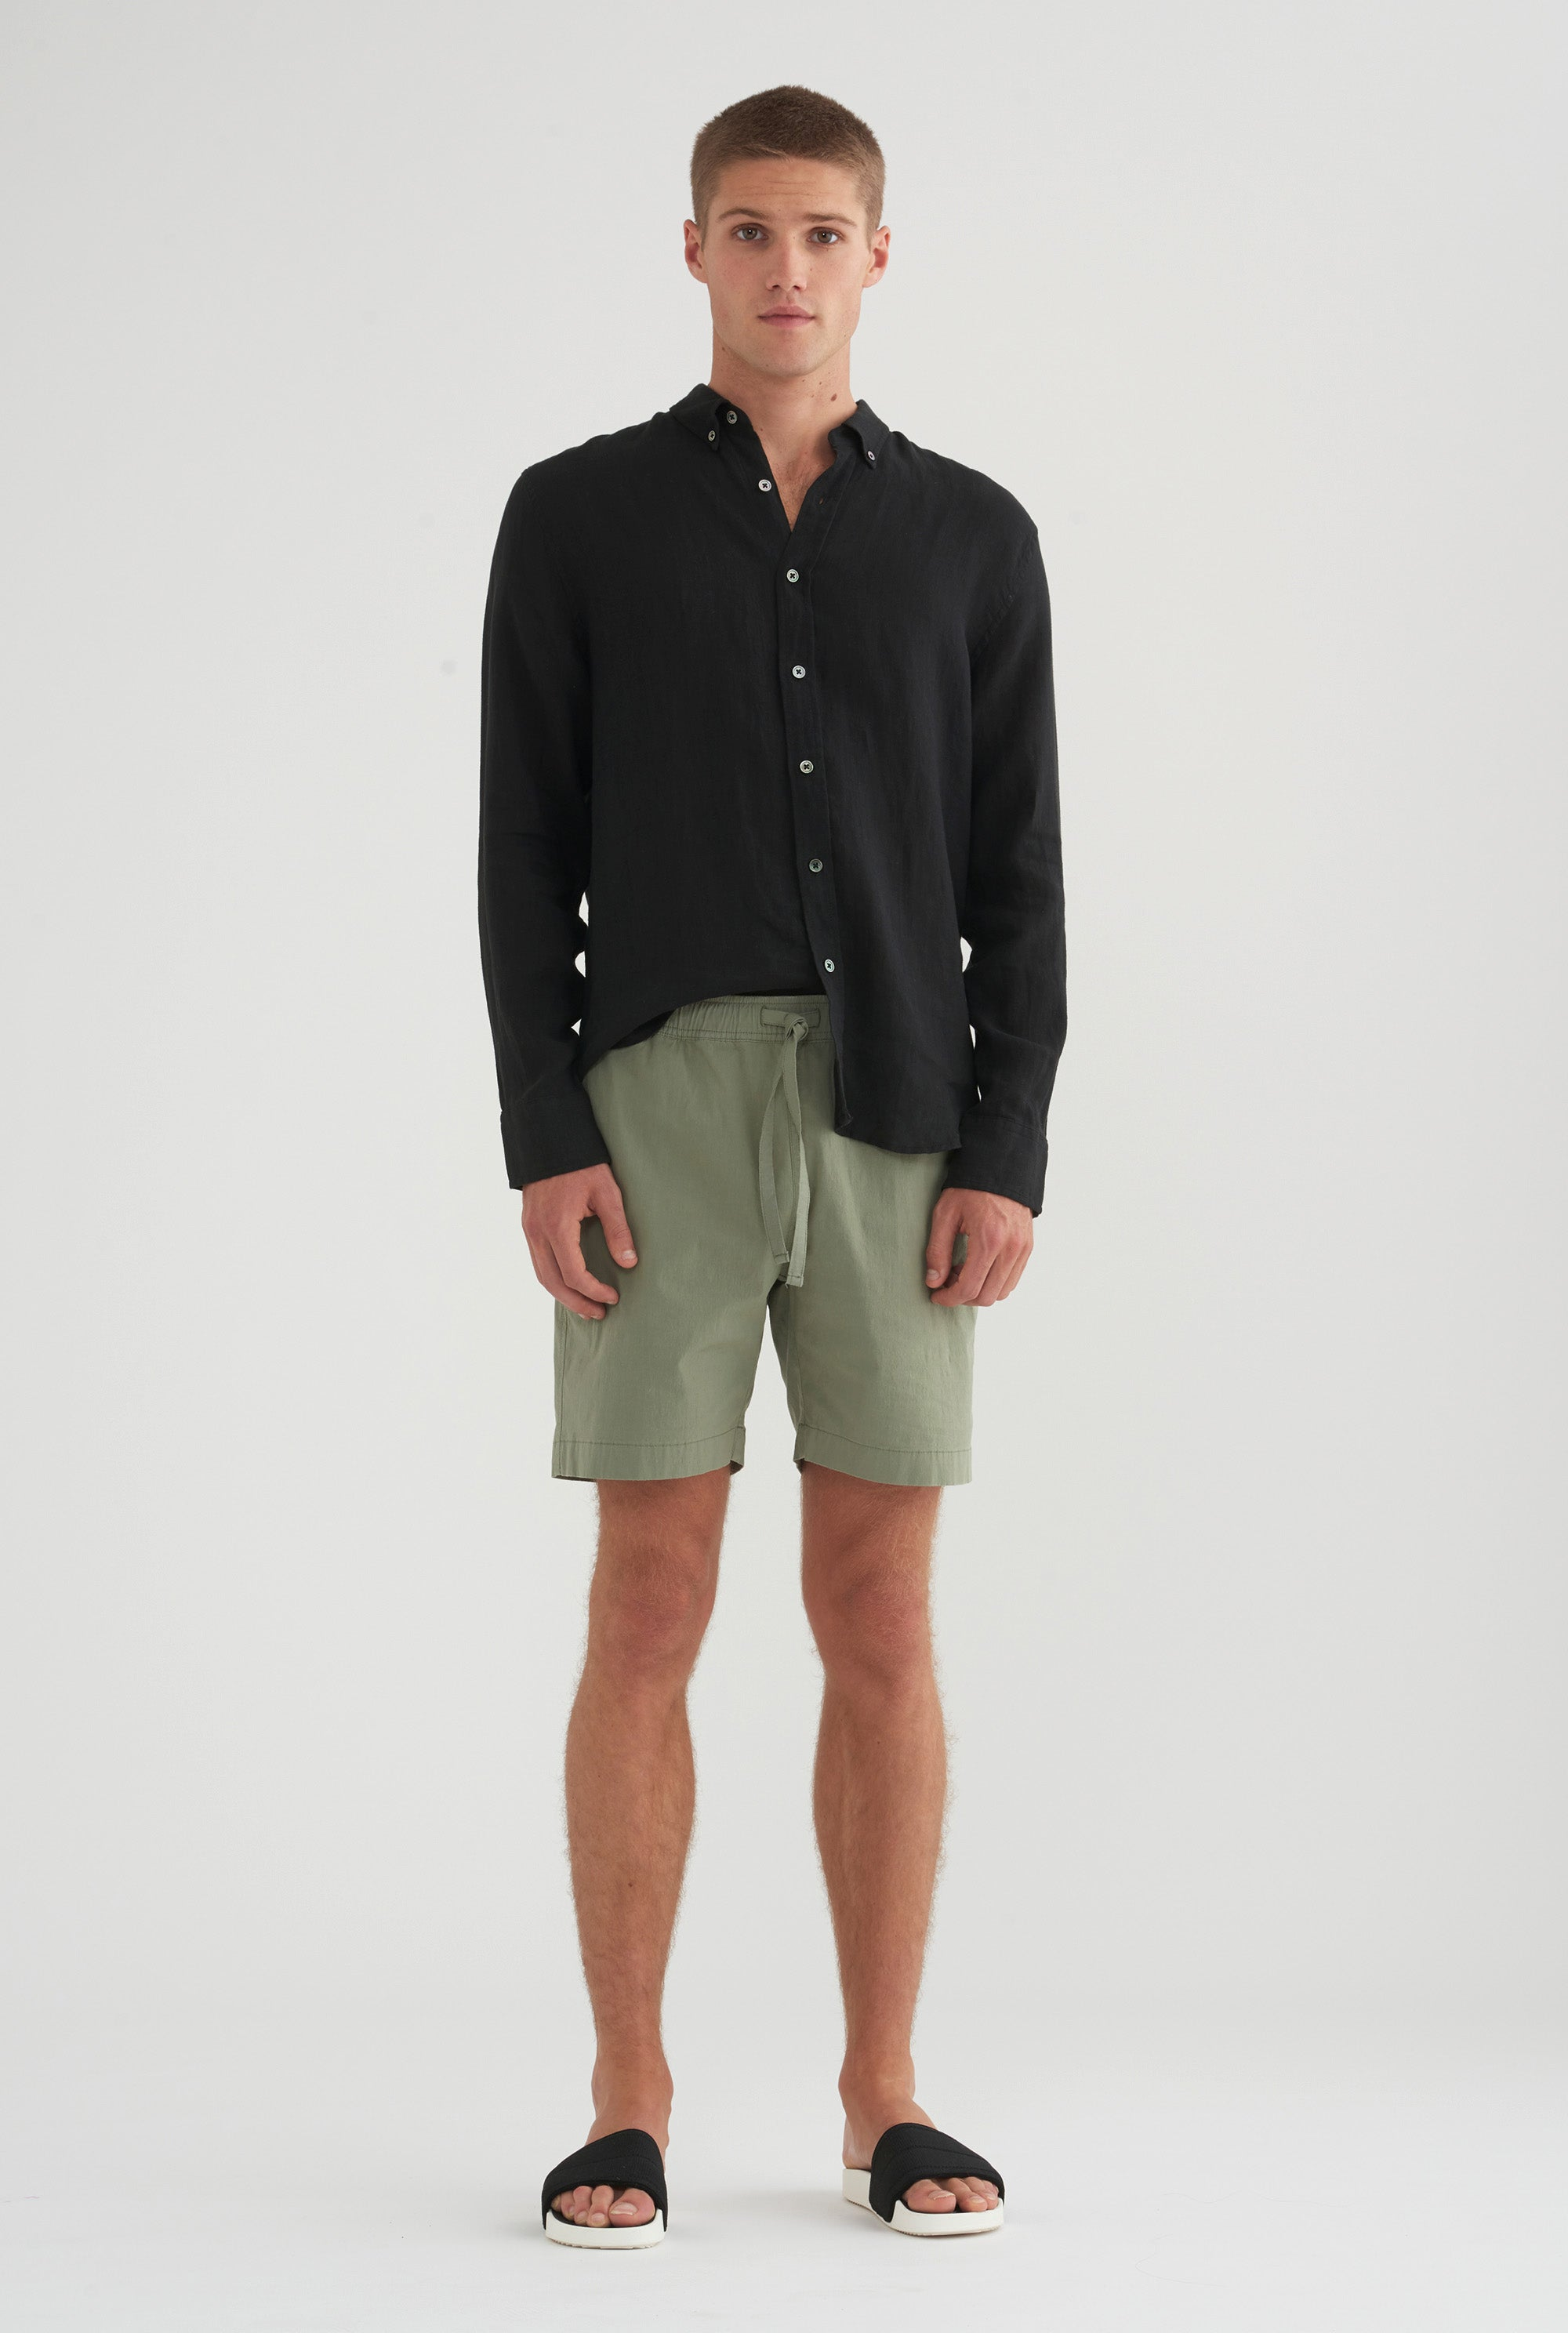 Cotton Stretch Short - Aspen Green